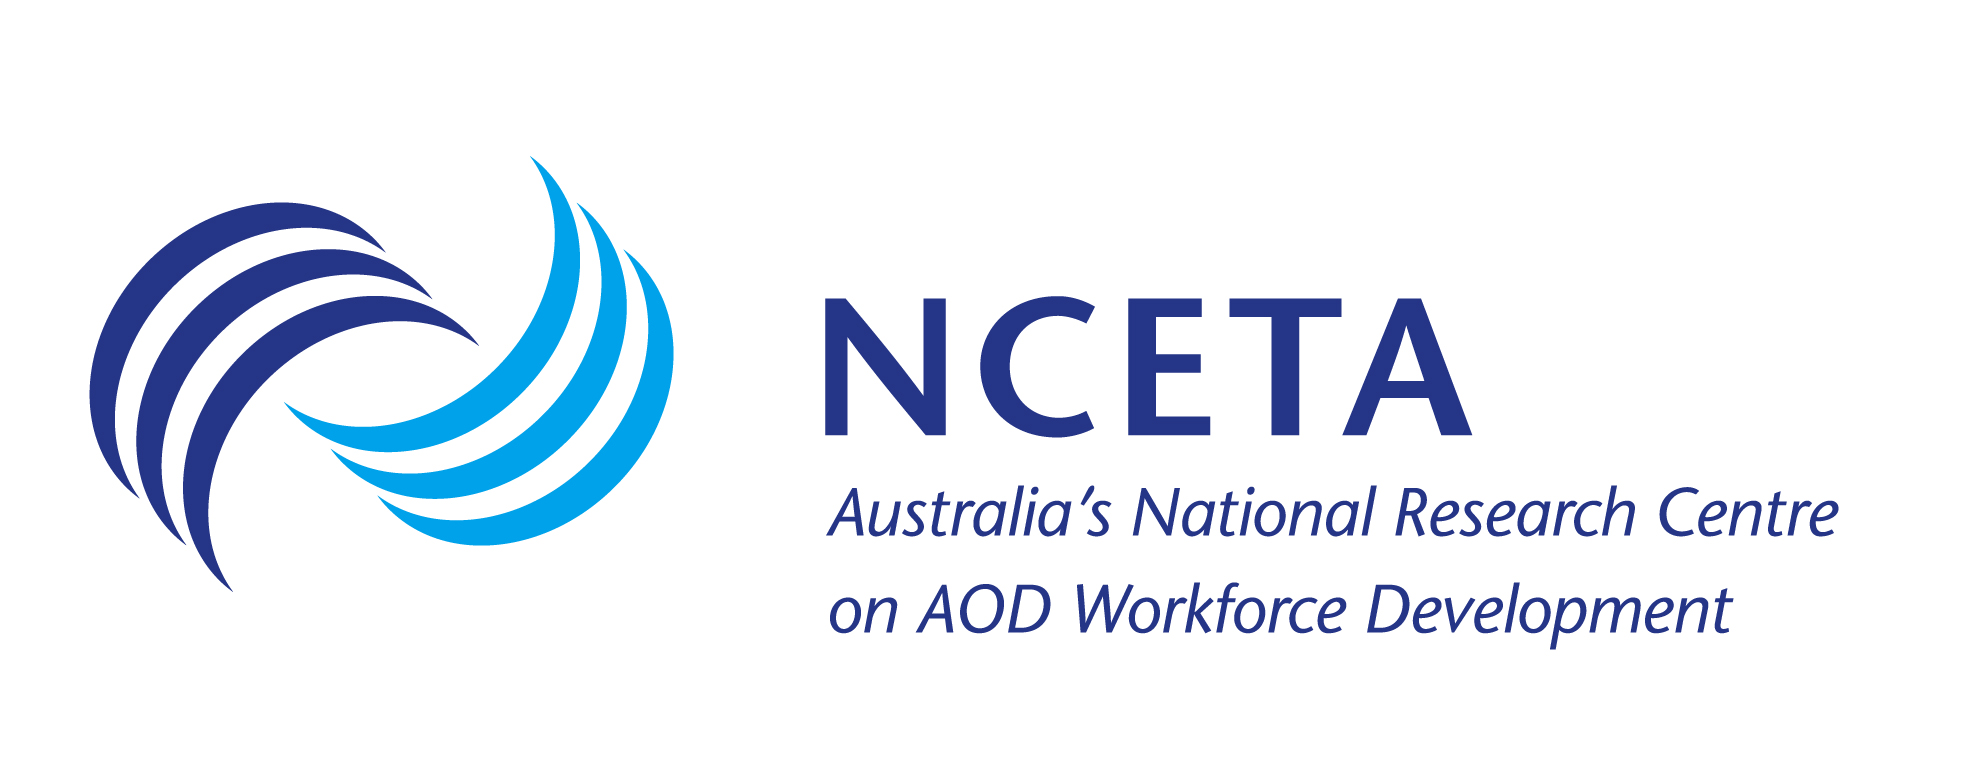 Australia's National Research Centre on AOD Workforce Development